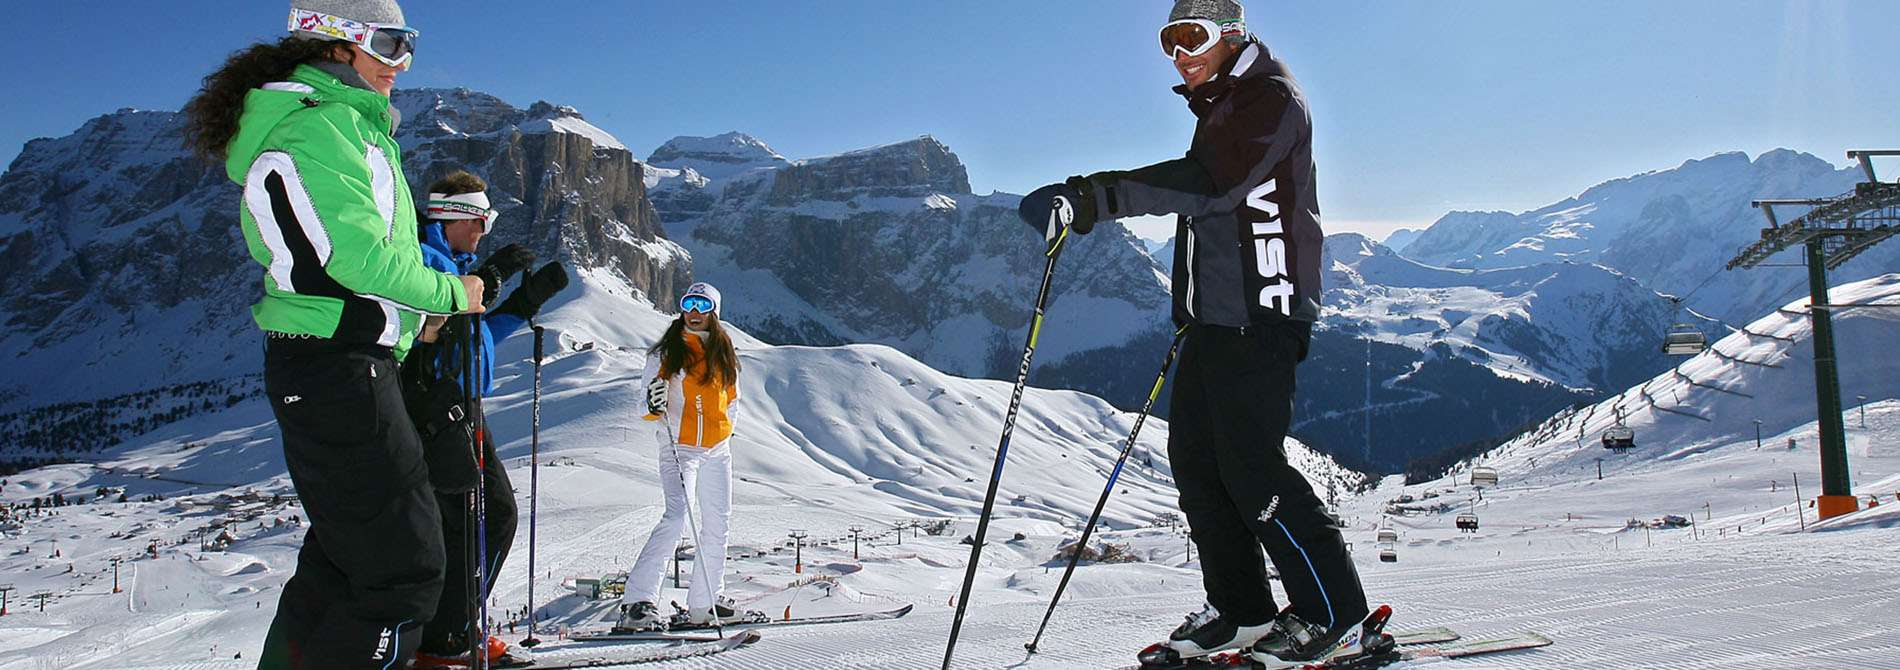 FREE SKI DAY - LEARN FREE HOW TO SKI IN TRENTINO